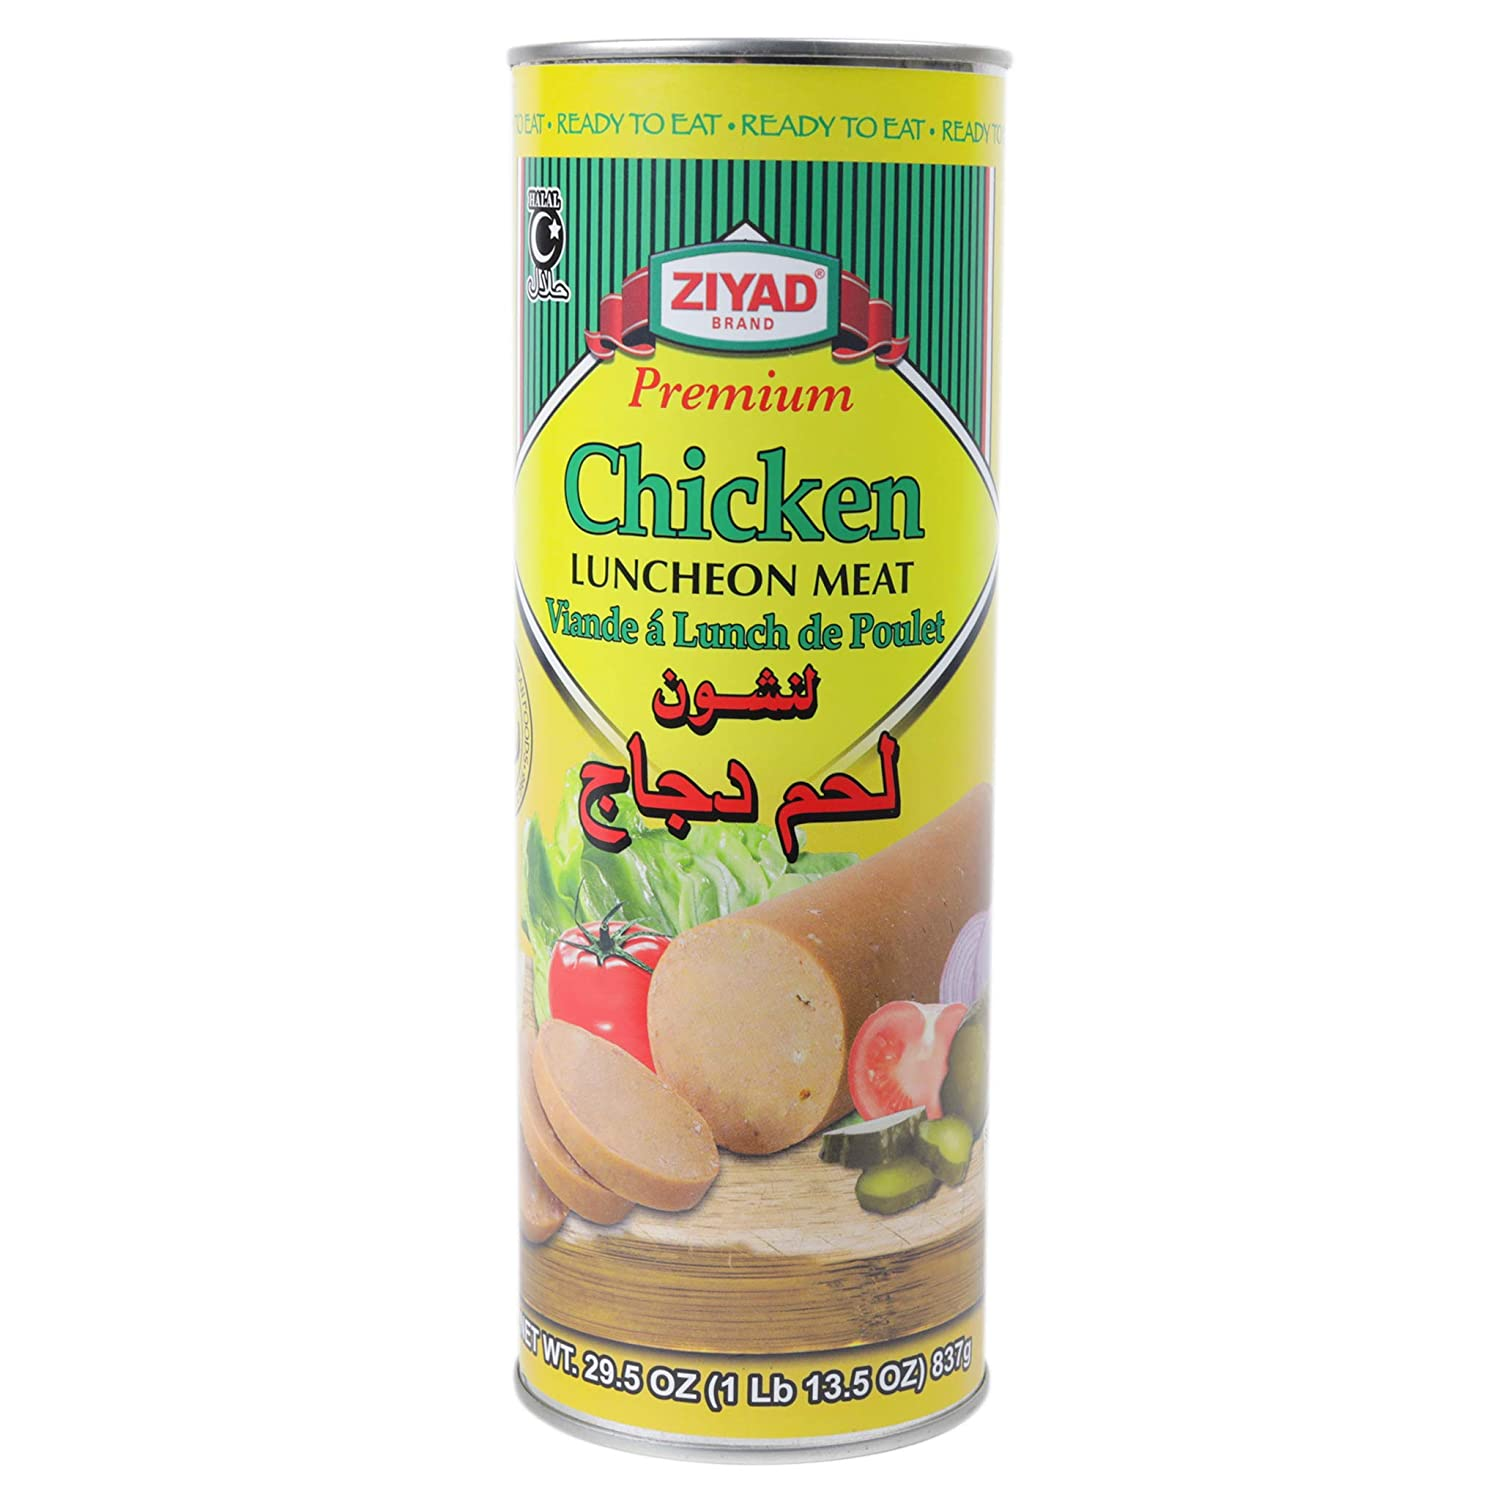 Ziyad Brand Premium Chicken Luncheon Meat, Halal, Ready to Eat, Delicious When Fried! 29.5oz